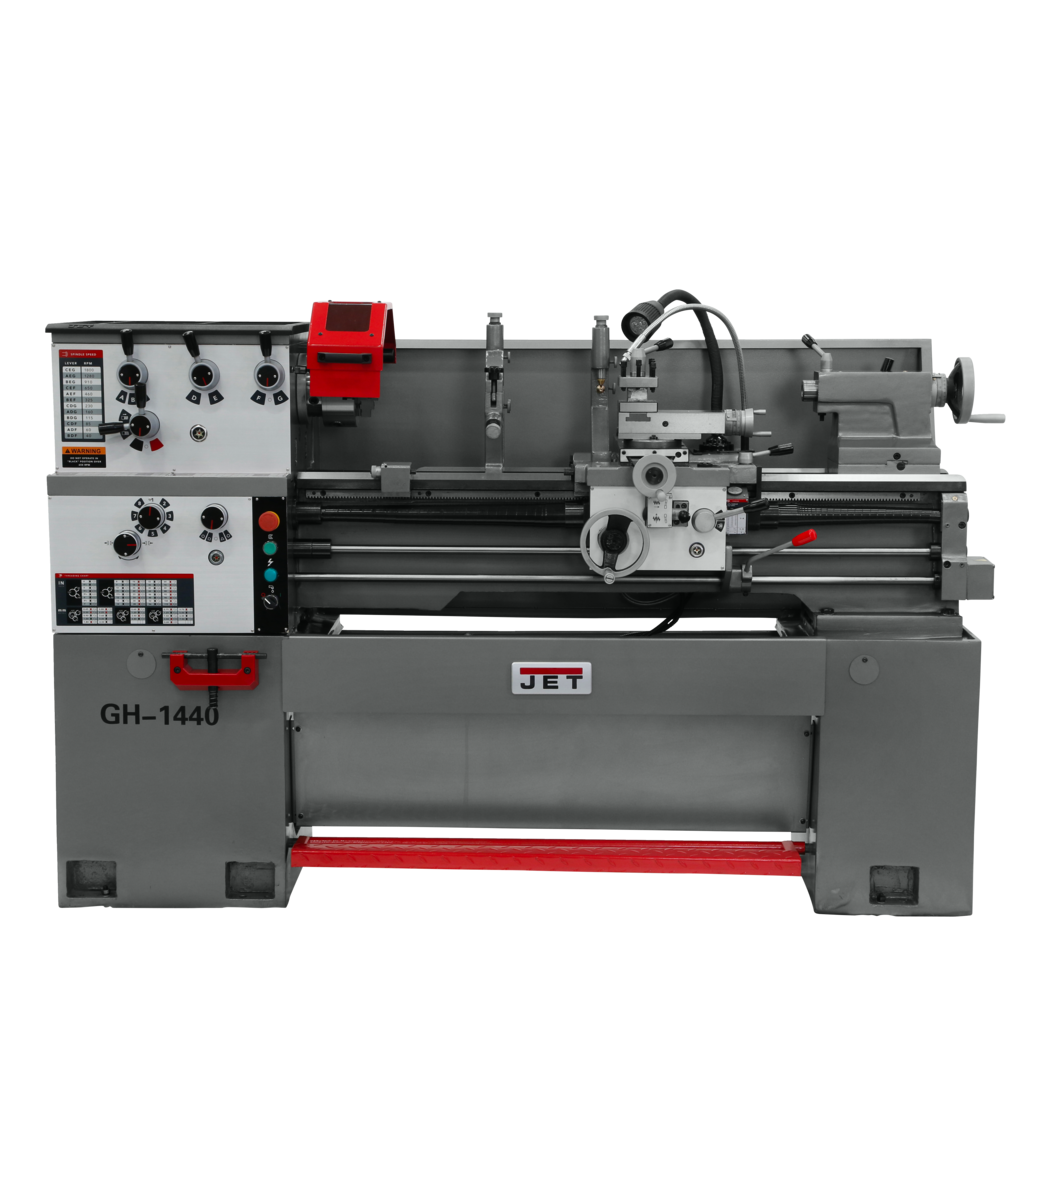 GH-1440-1  Lathe with DP700 DRO